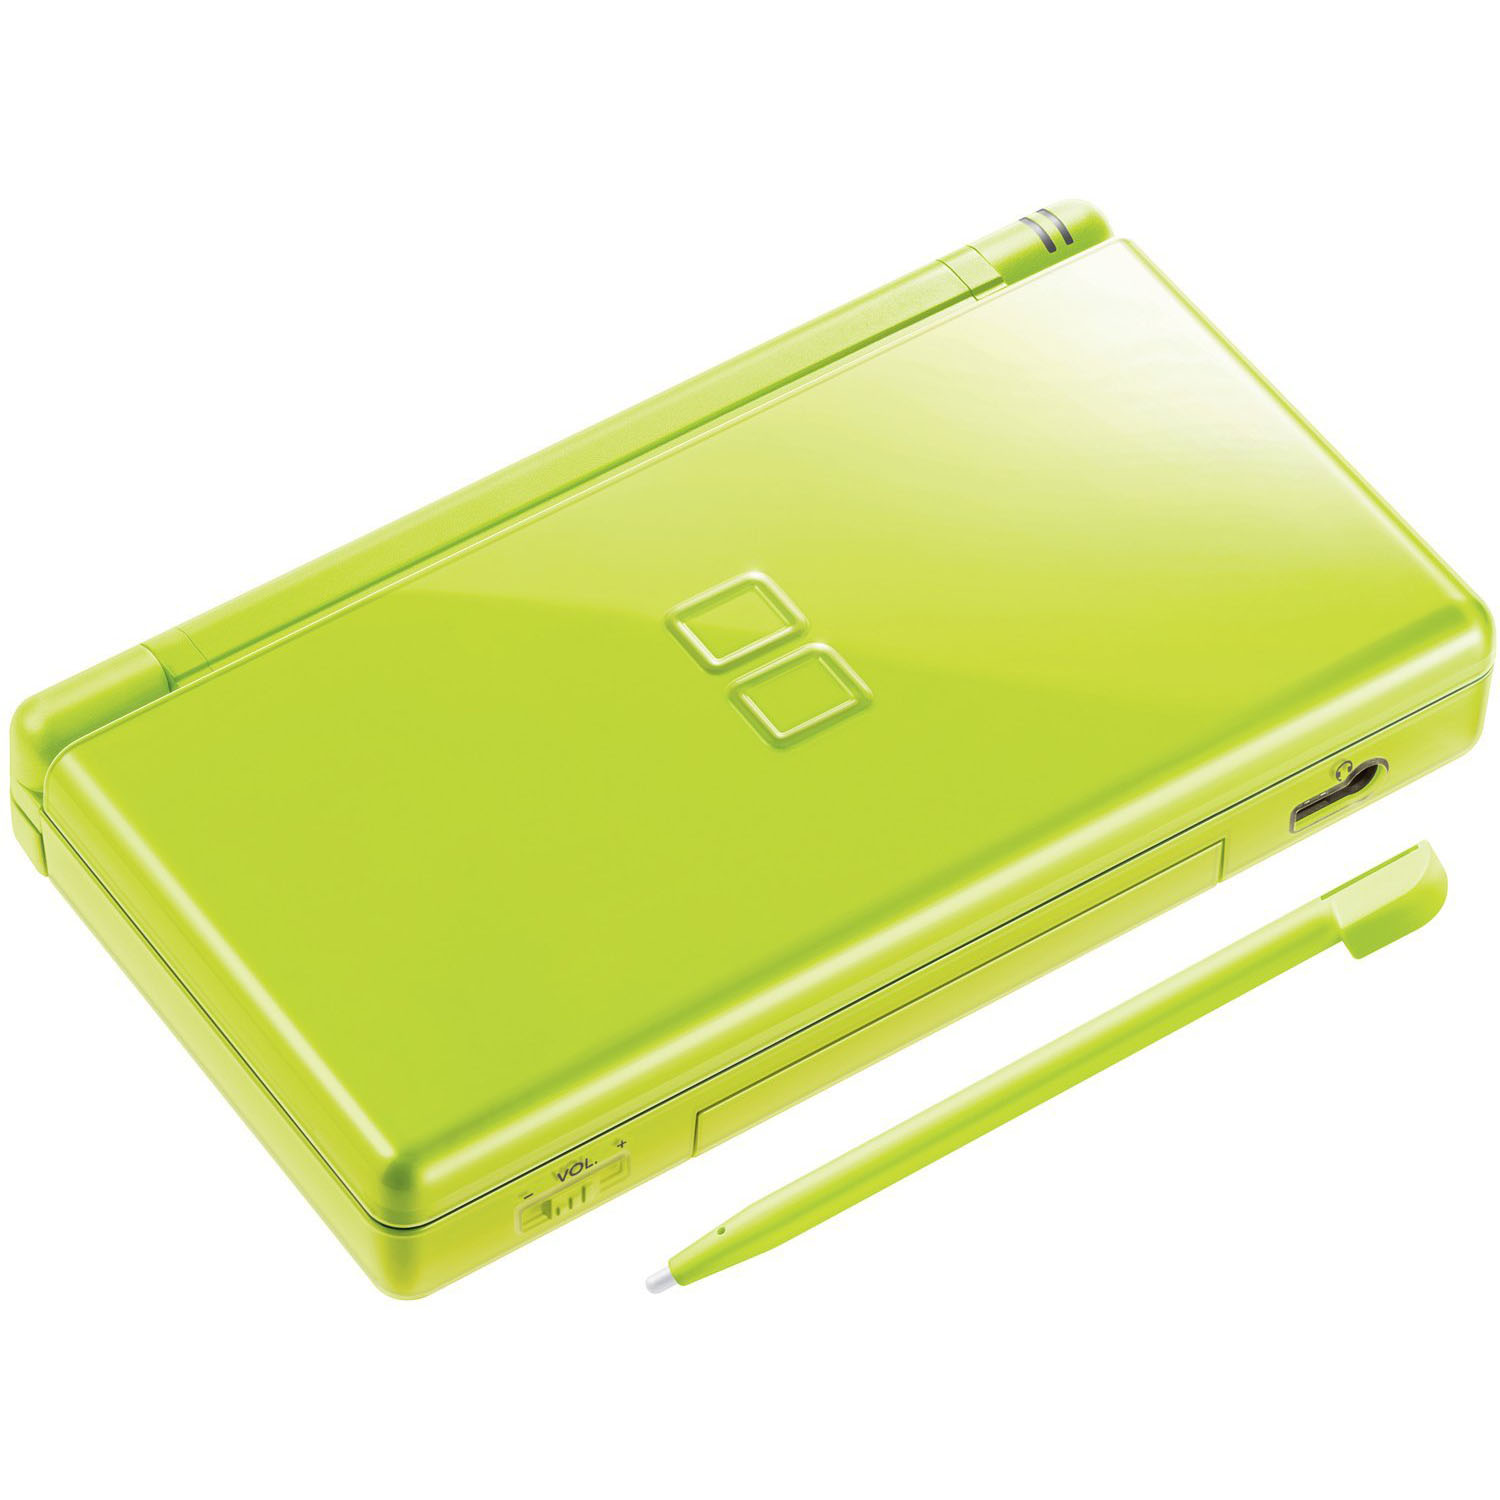 nintendo ds lite lcd dual screen wireless video game console lime green ebay. Black Bedroom Furniture Sets. Home Design Ideas